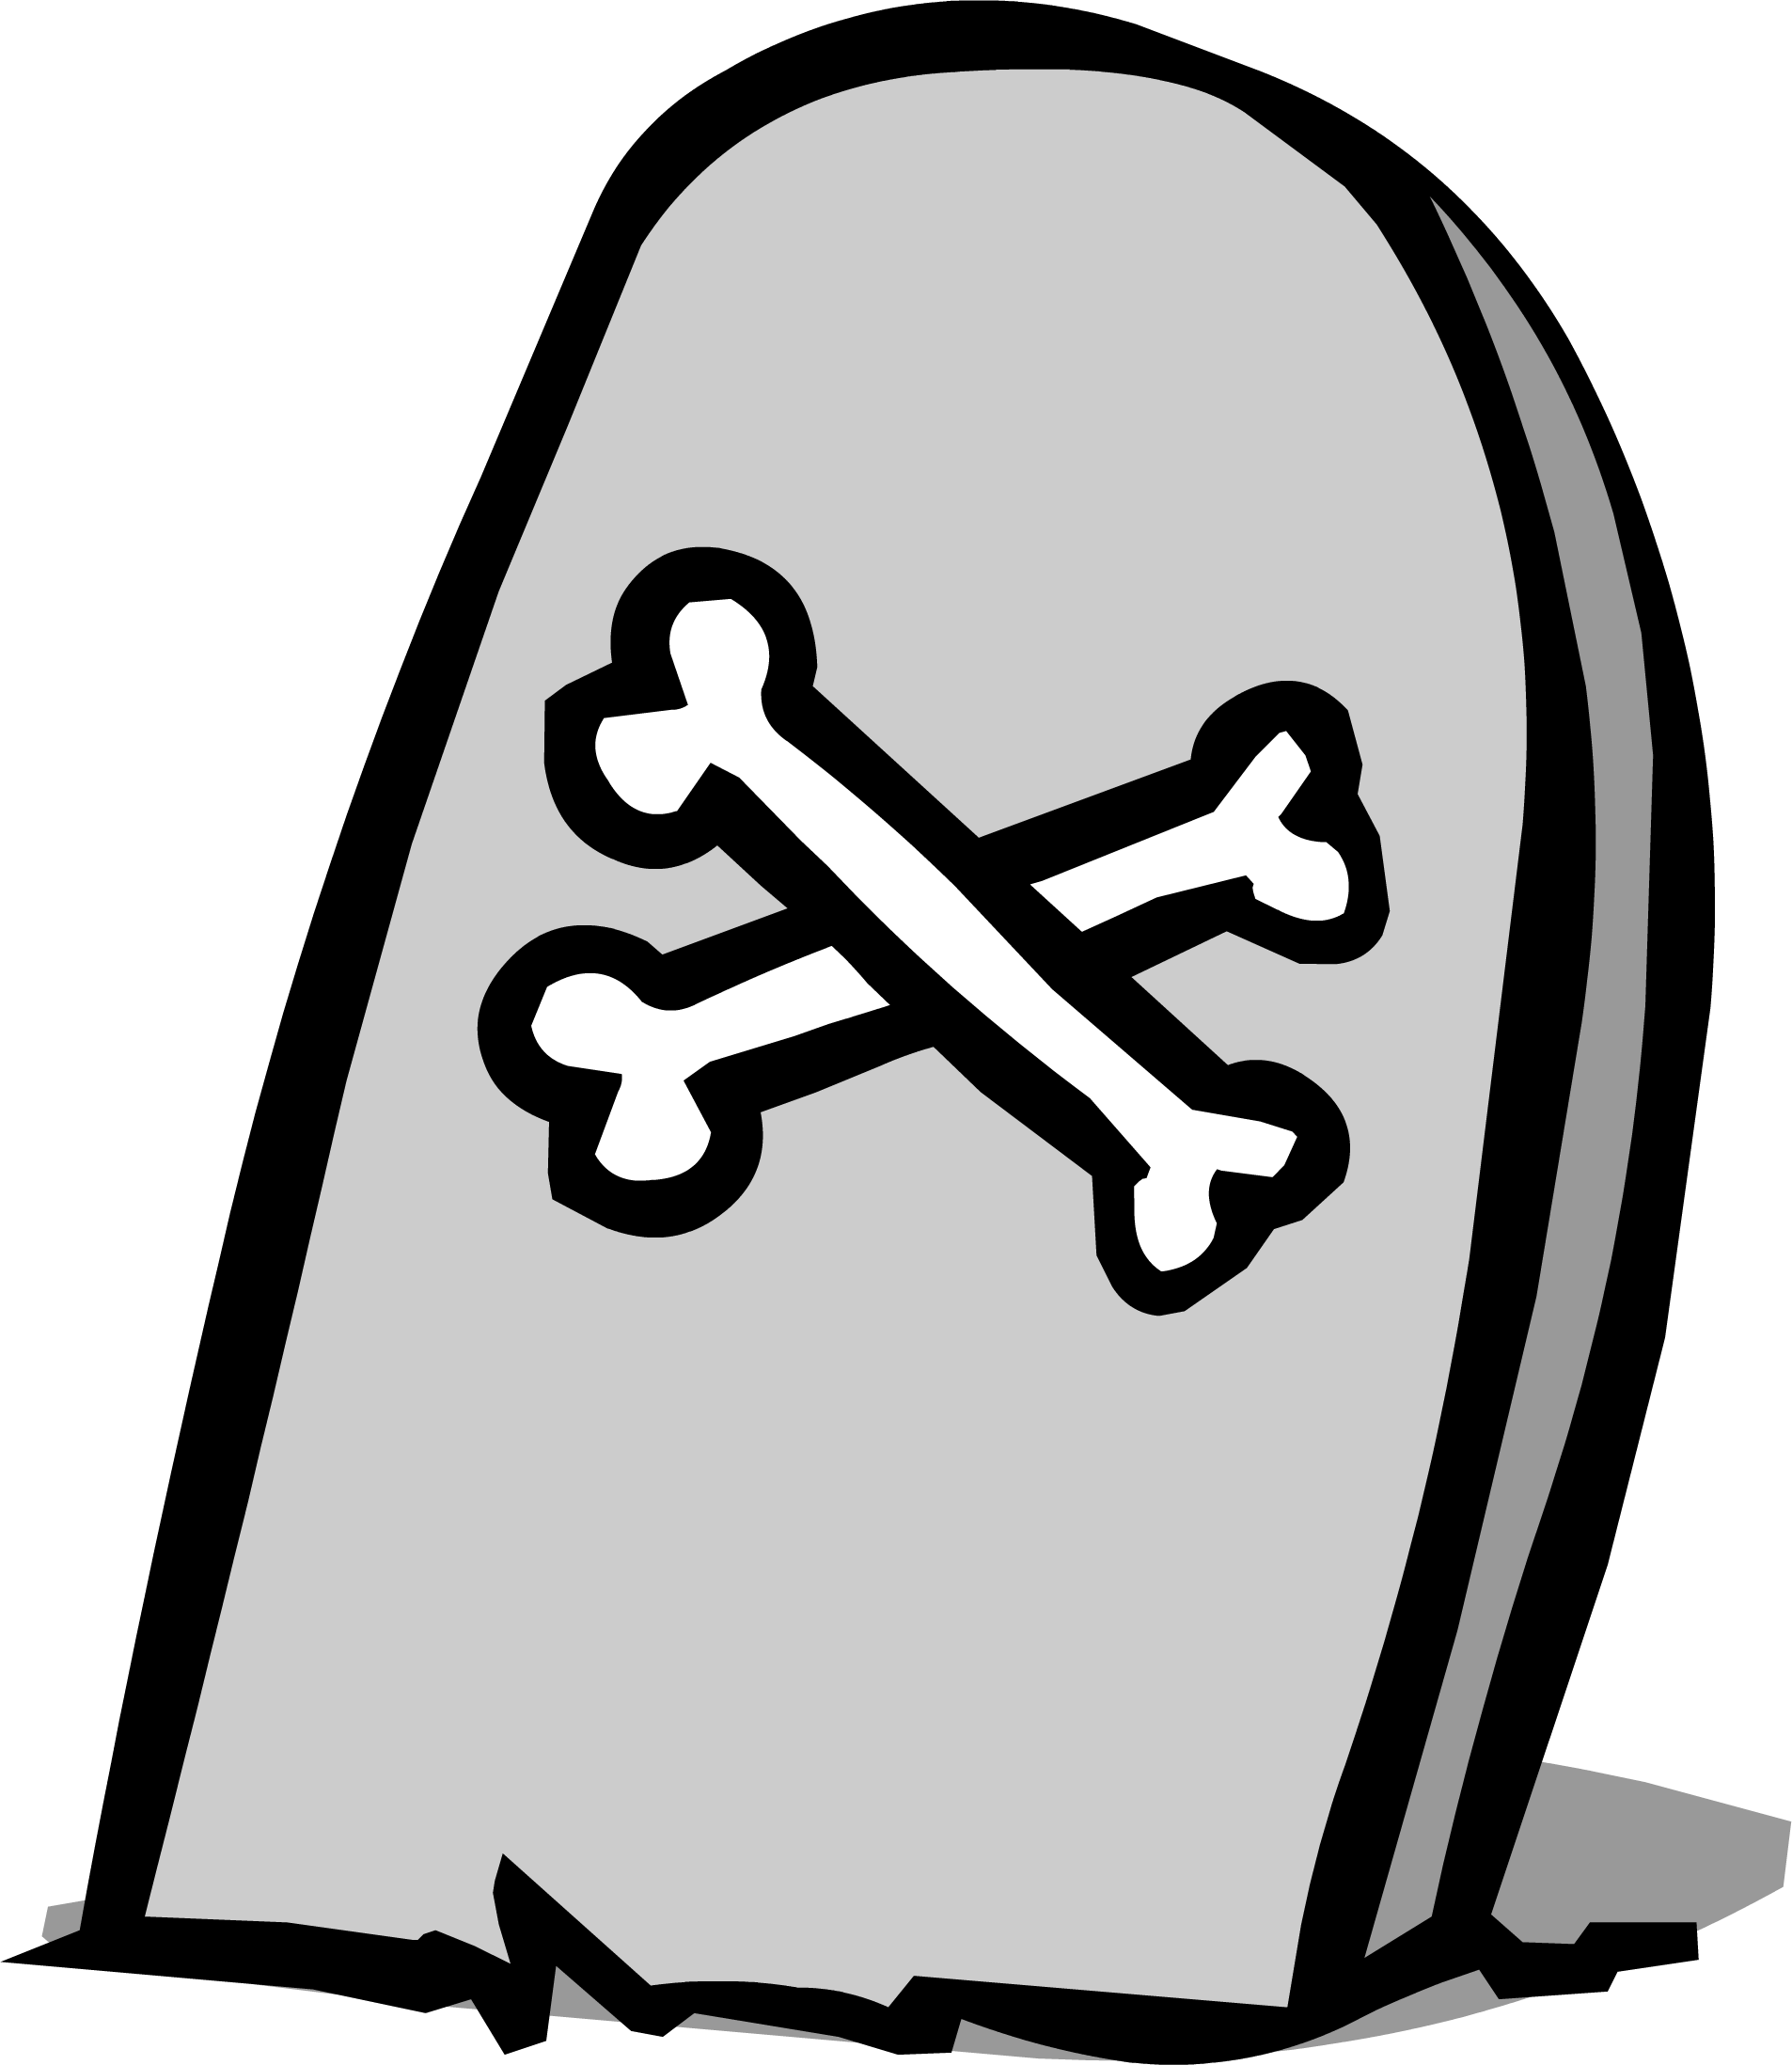 Tombstone png. Image sprite club penguin